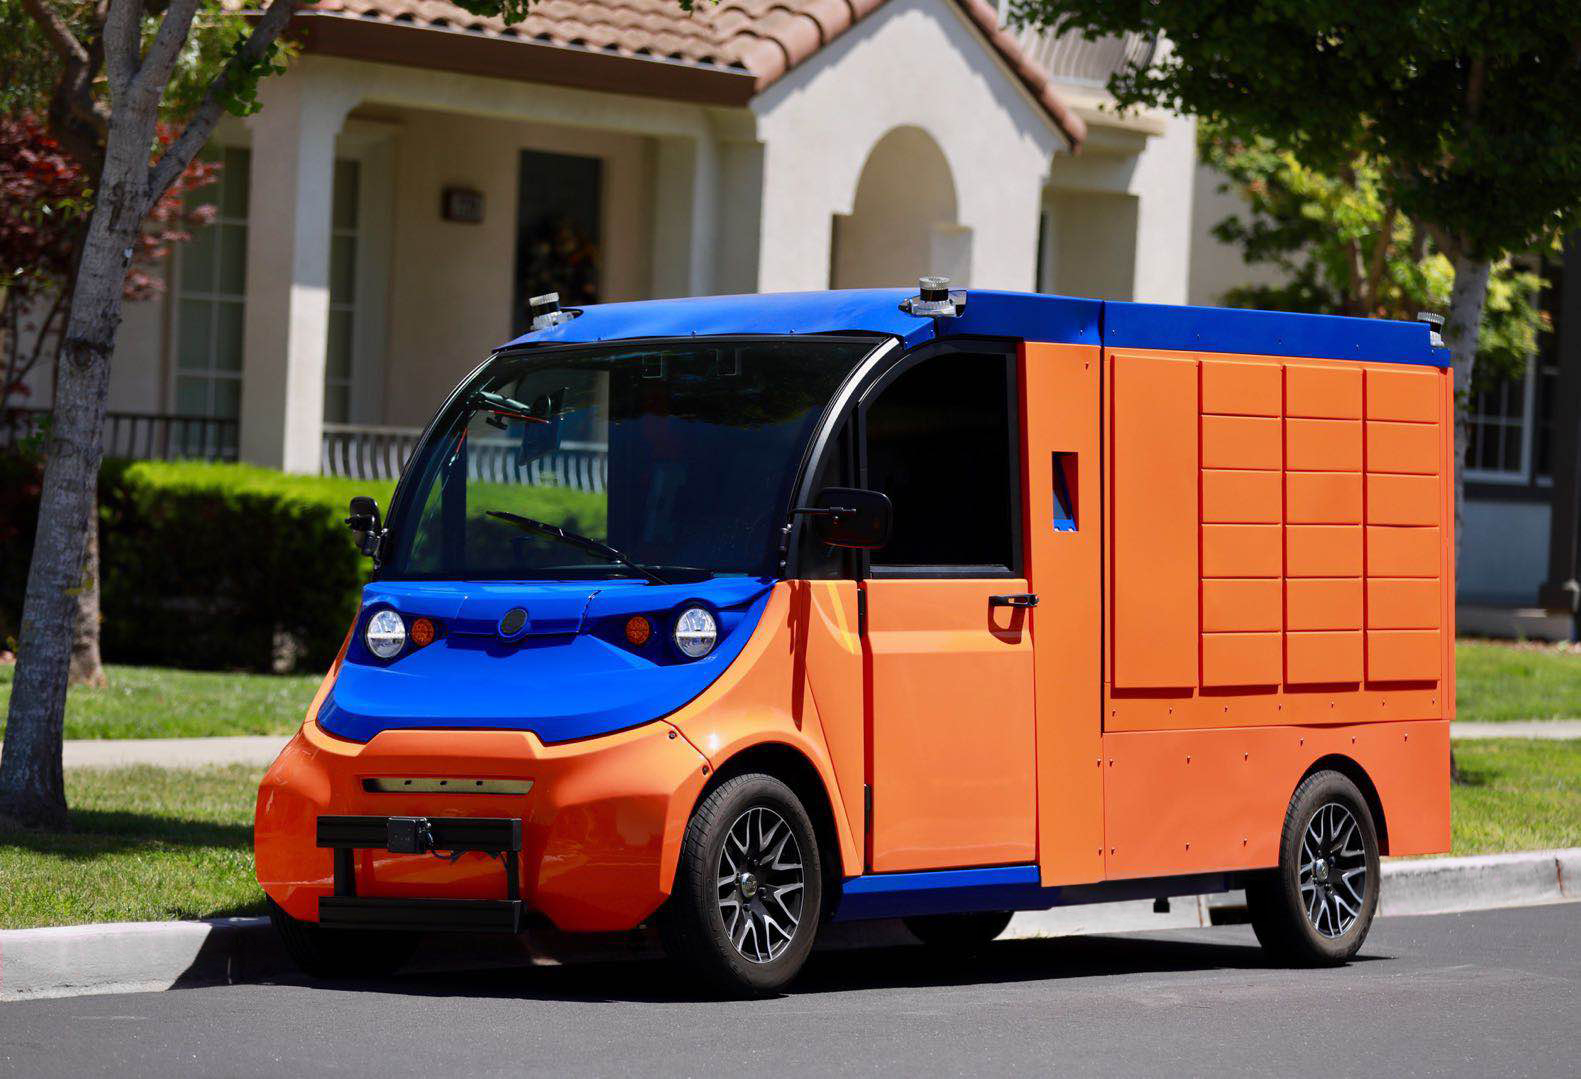 Boxbot self-driving parcel delivery vehicle